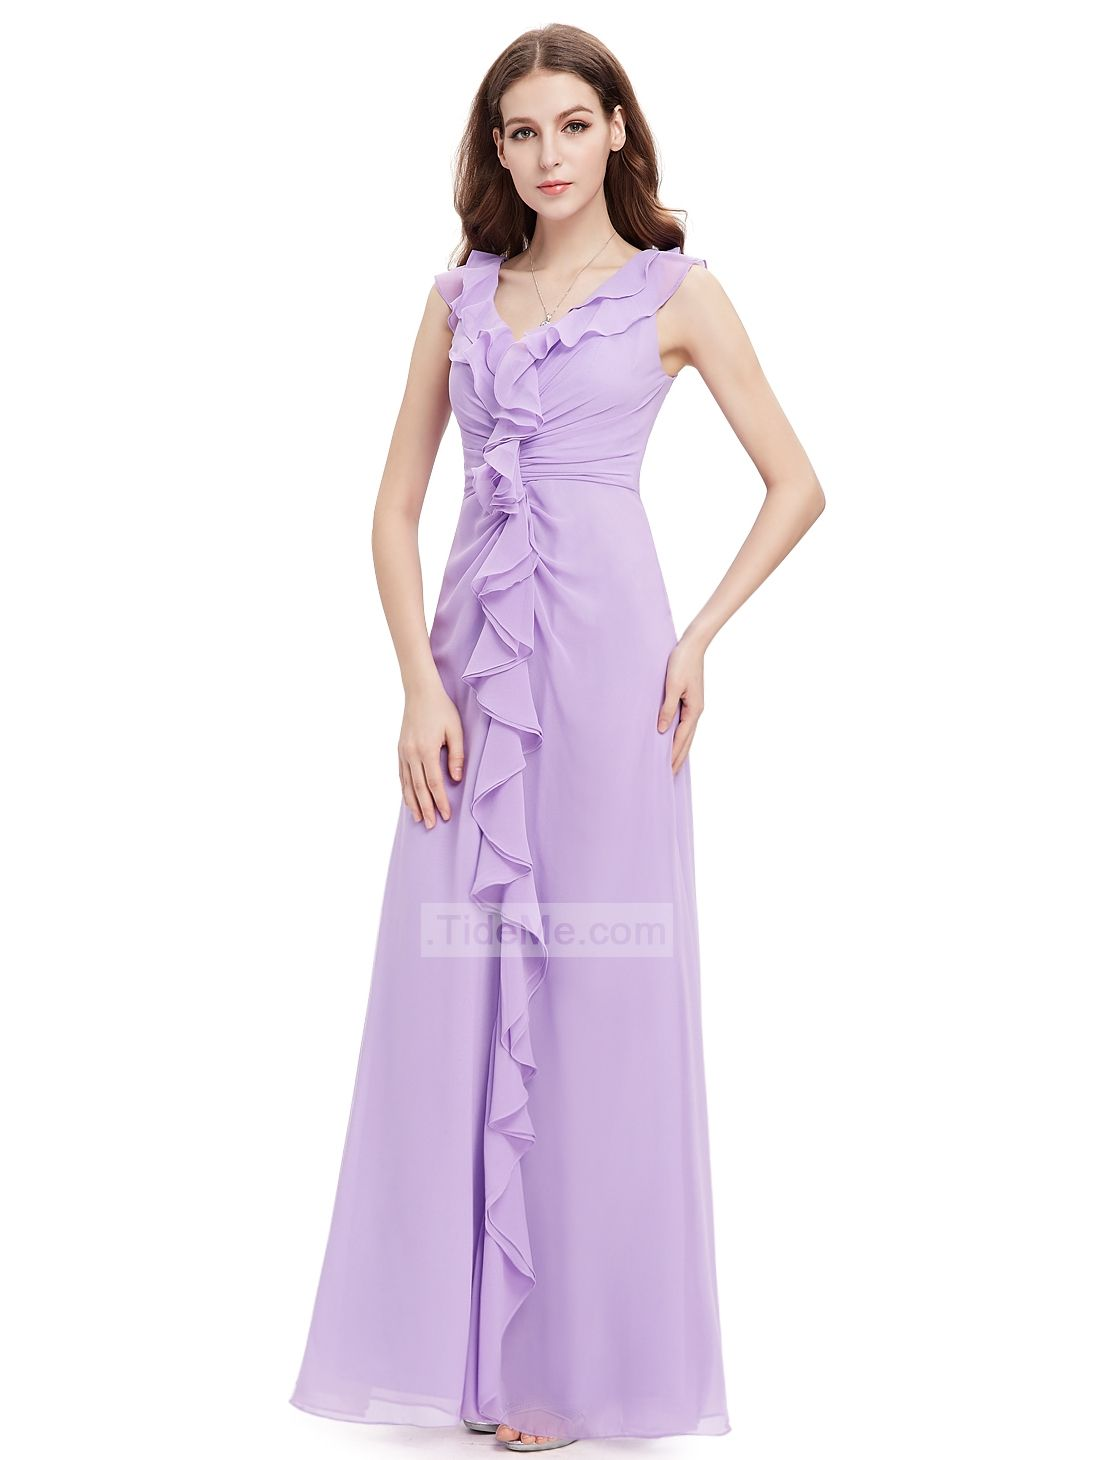 Lilac Chiffon Frills Sheath Floor Length Elegant Long Prom Dress ...